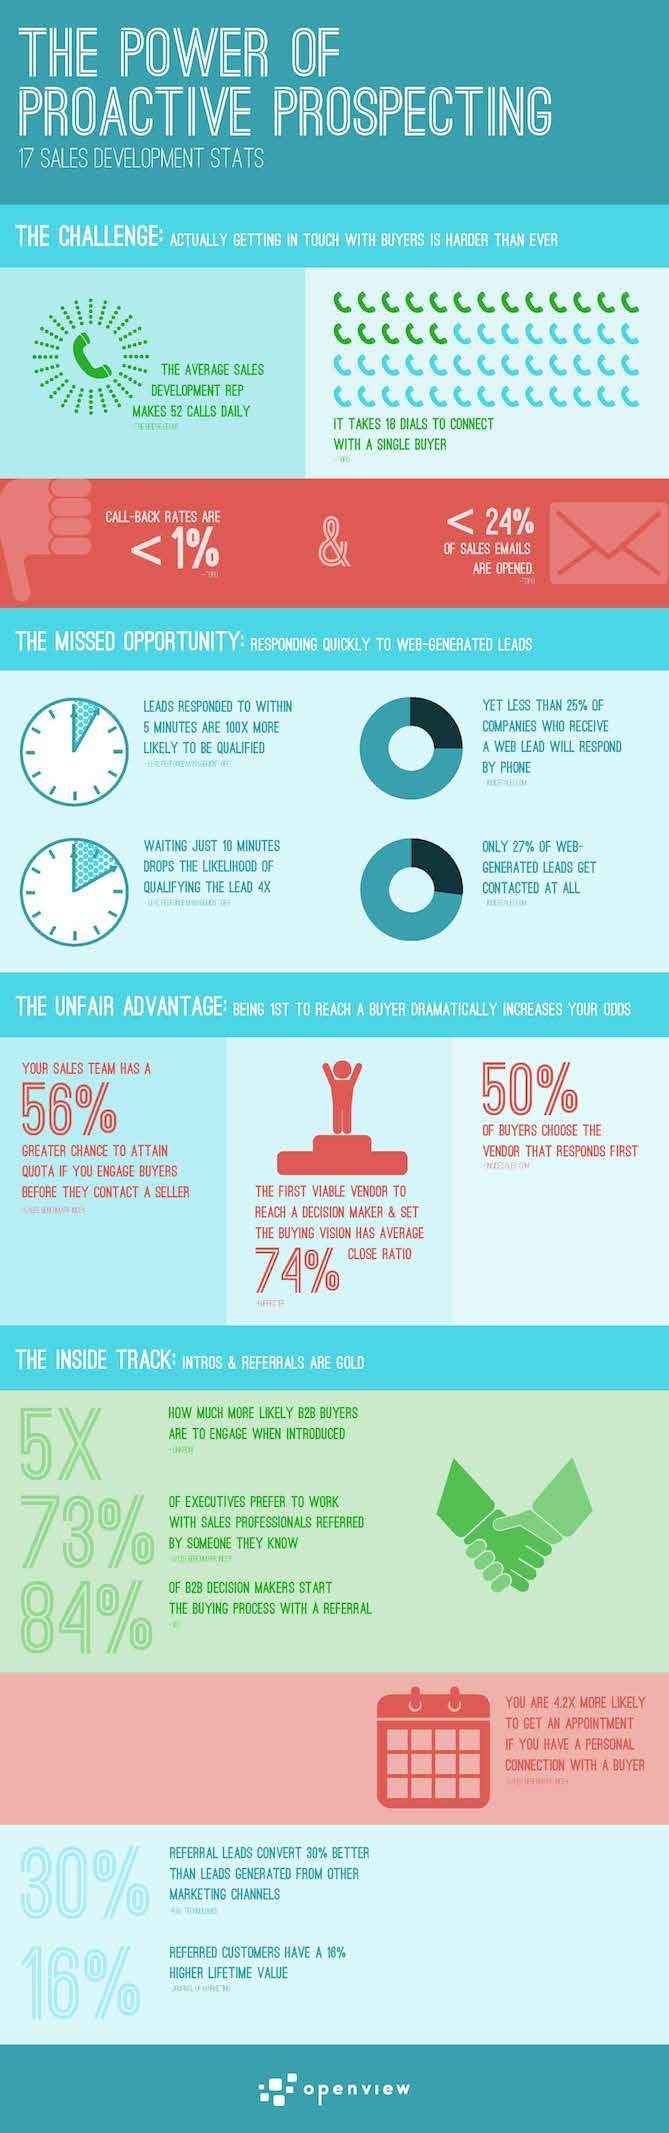 17 Surprising Stats on Sales Prospecting That Will Change the Way You Look at Cold Calling [Infographic]